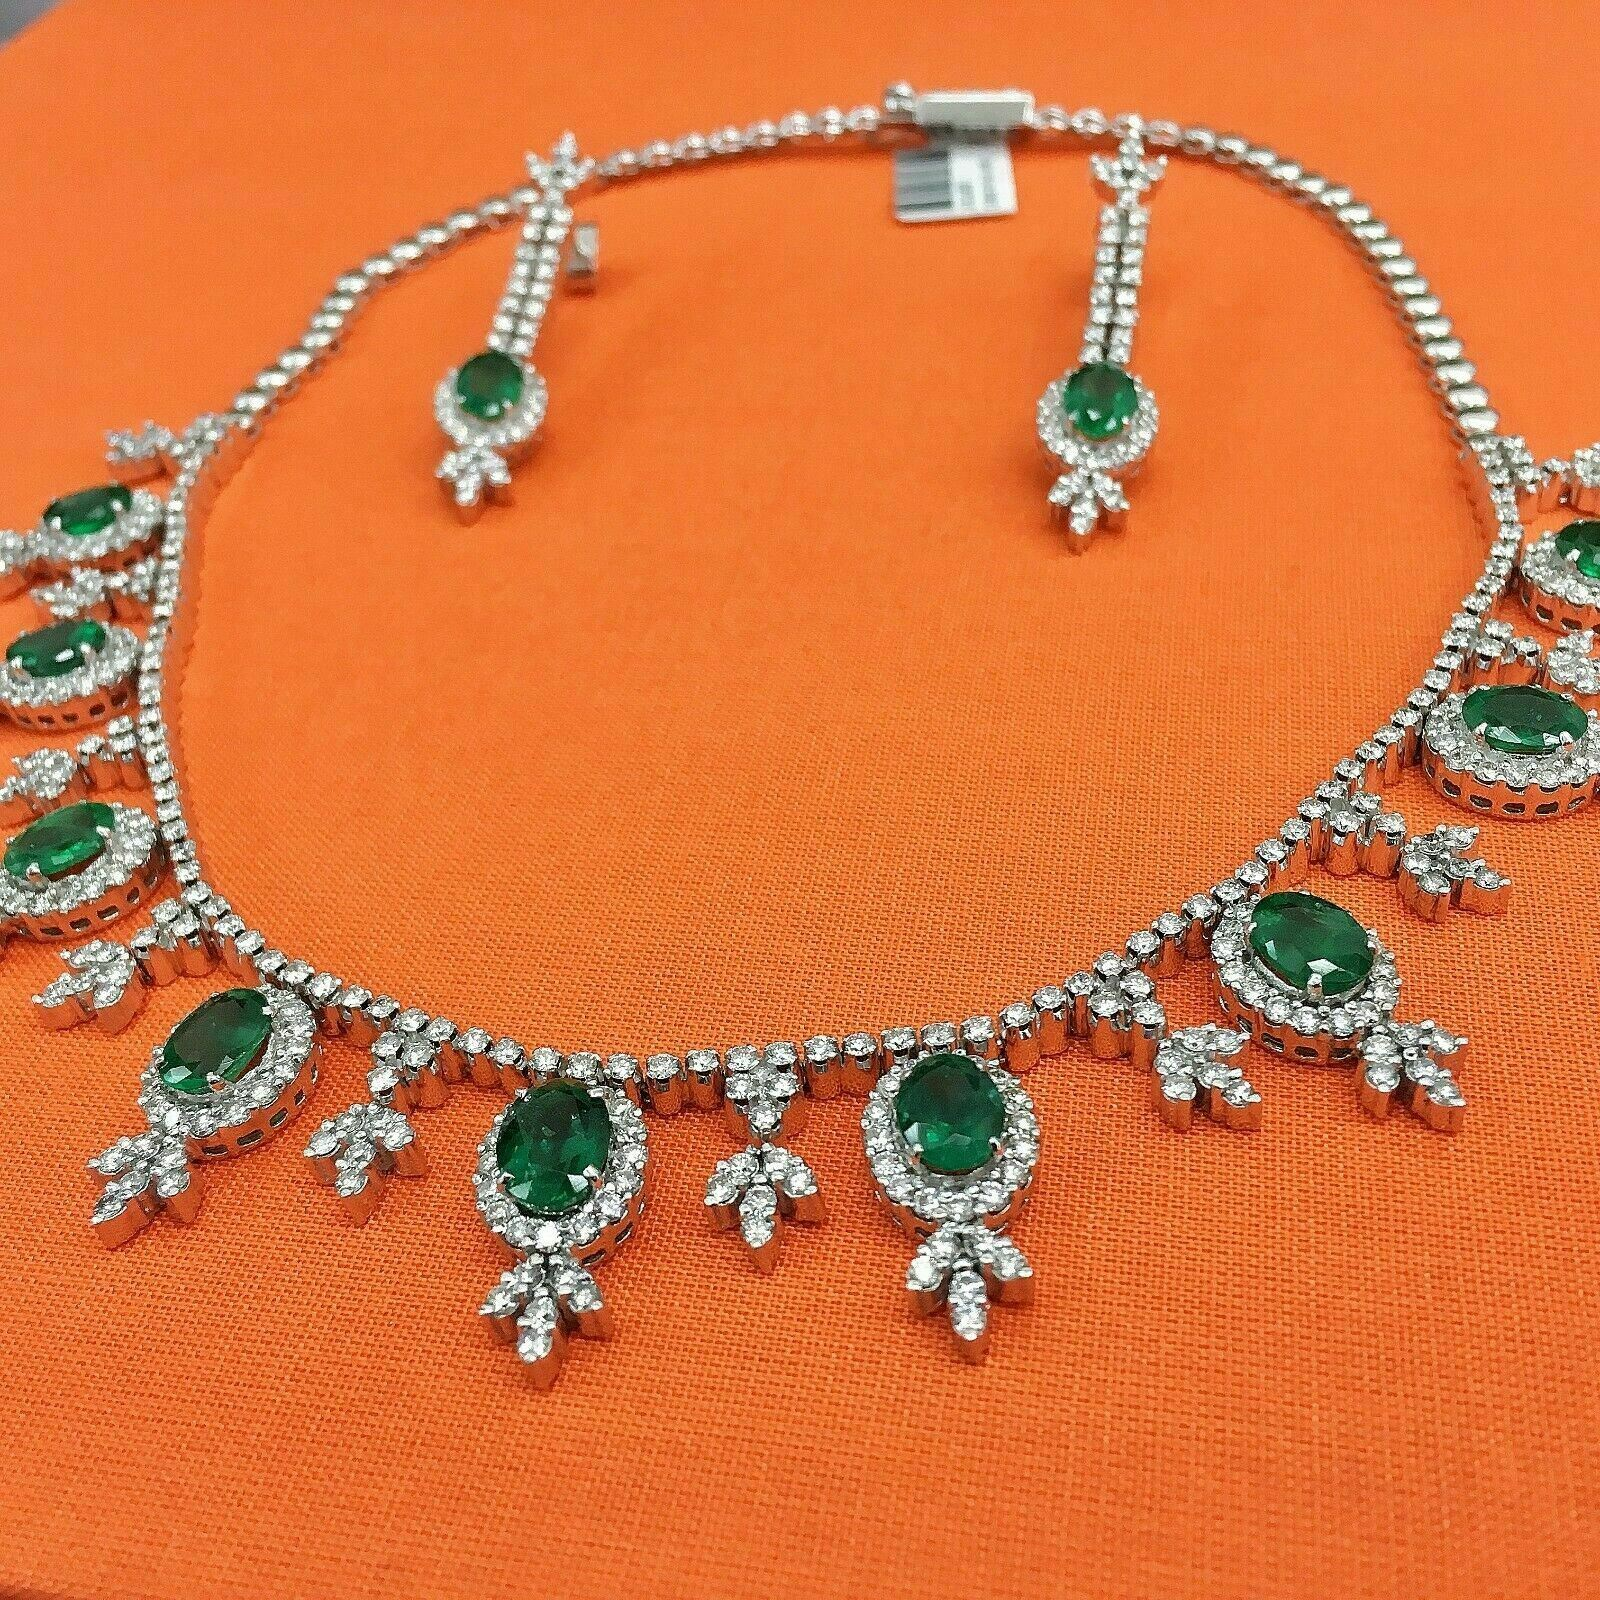 24.26 Carats t.w. Diamond and Emerald Ballroom Necklace Earrings Set 73.6 GM 18K